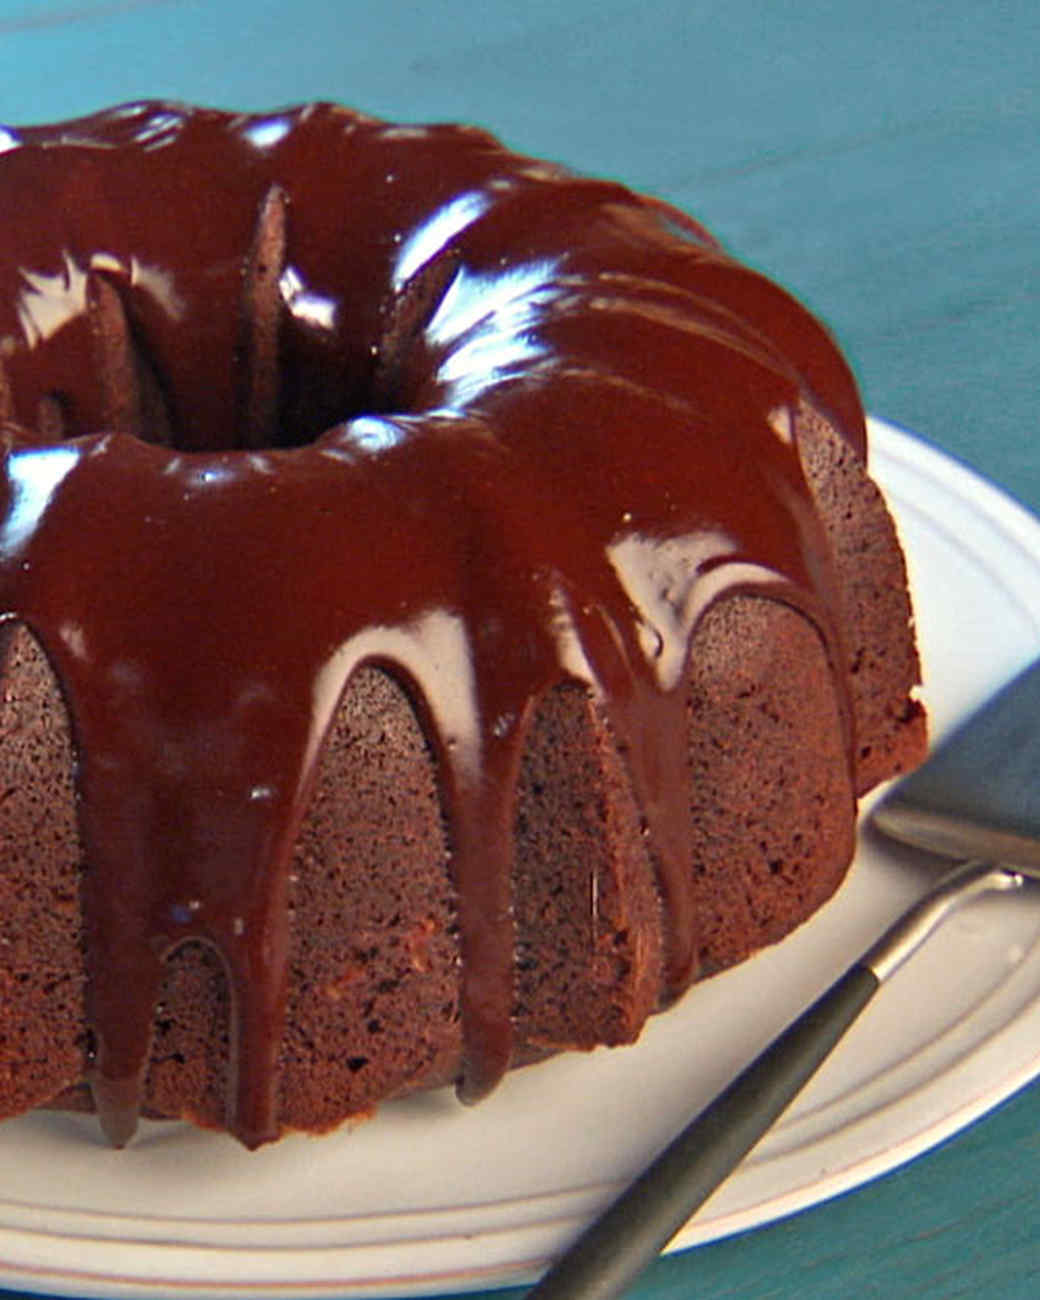 Chocolate Bundt Cake Recipe With Pudding Mix